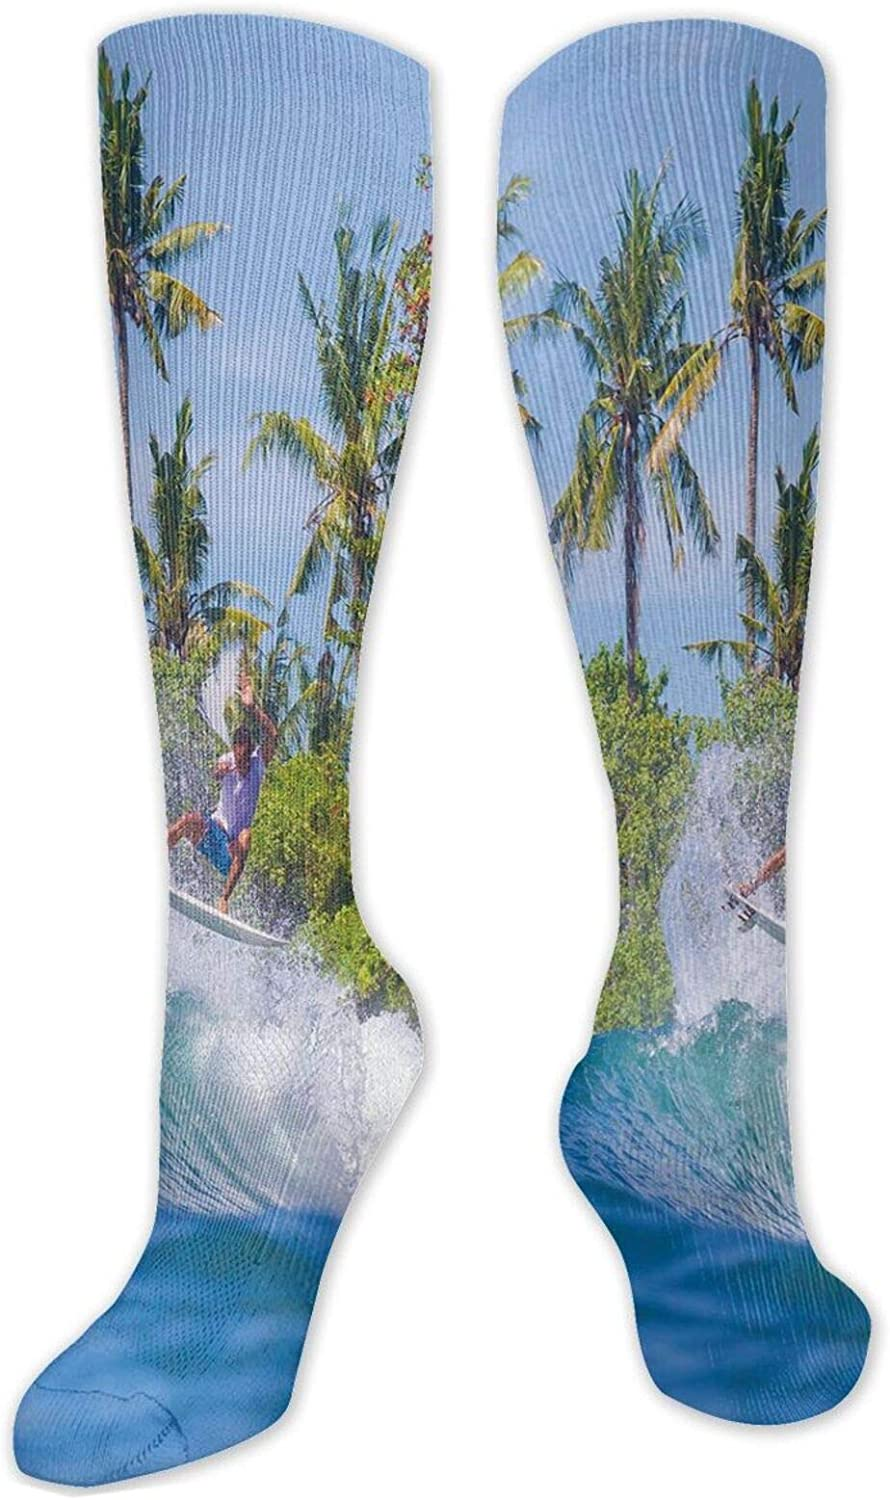 Compression High Socks-Abstract Floral Background Traditional Ornaments Lines Dots Yuletide Best for Running,Athletic,Hiking,Travel,Flight